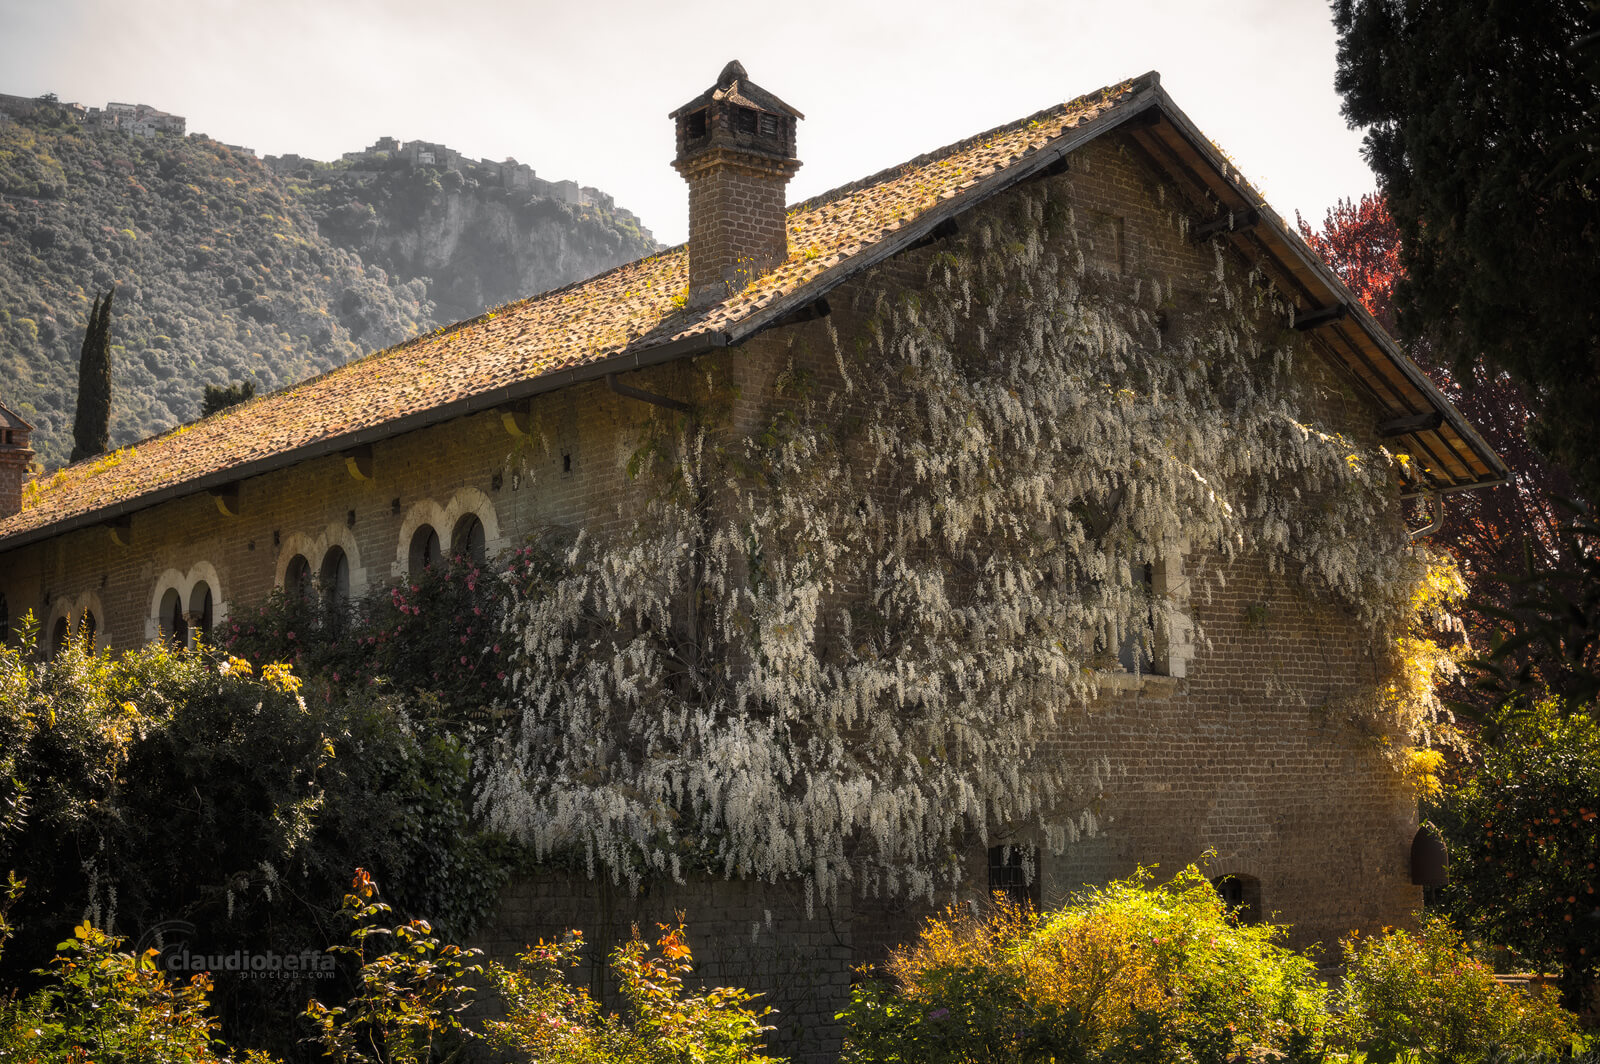 Garden of Ninfa, Garden, Ninfa, Italy, White Wisteria house, Wisteria, Flowers, Nature, Spring, Travel, Travel Photography, Ancient, Romantic